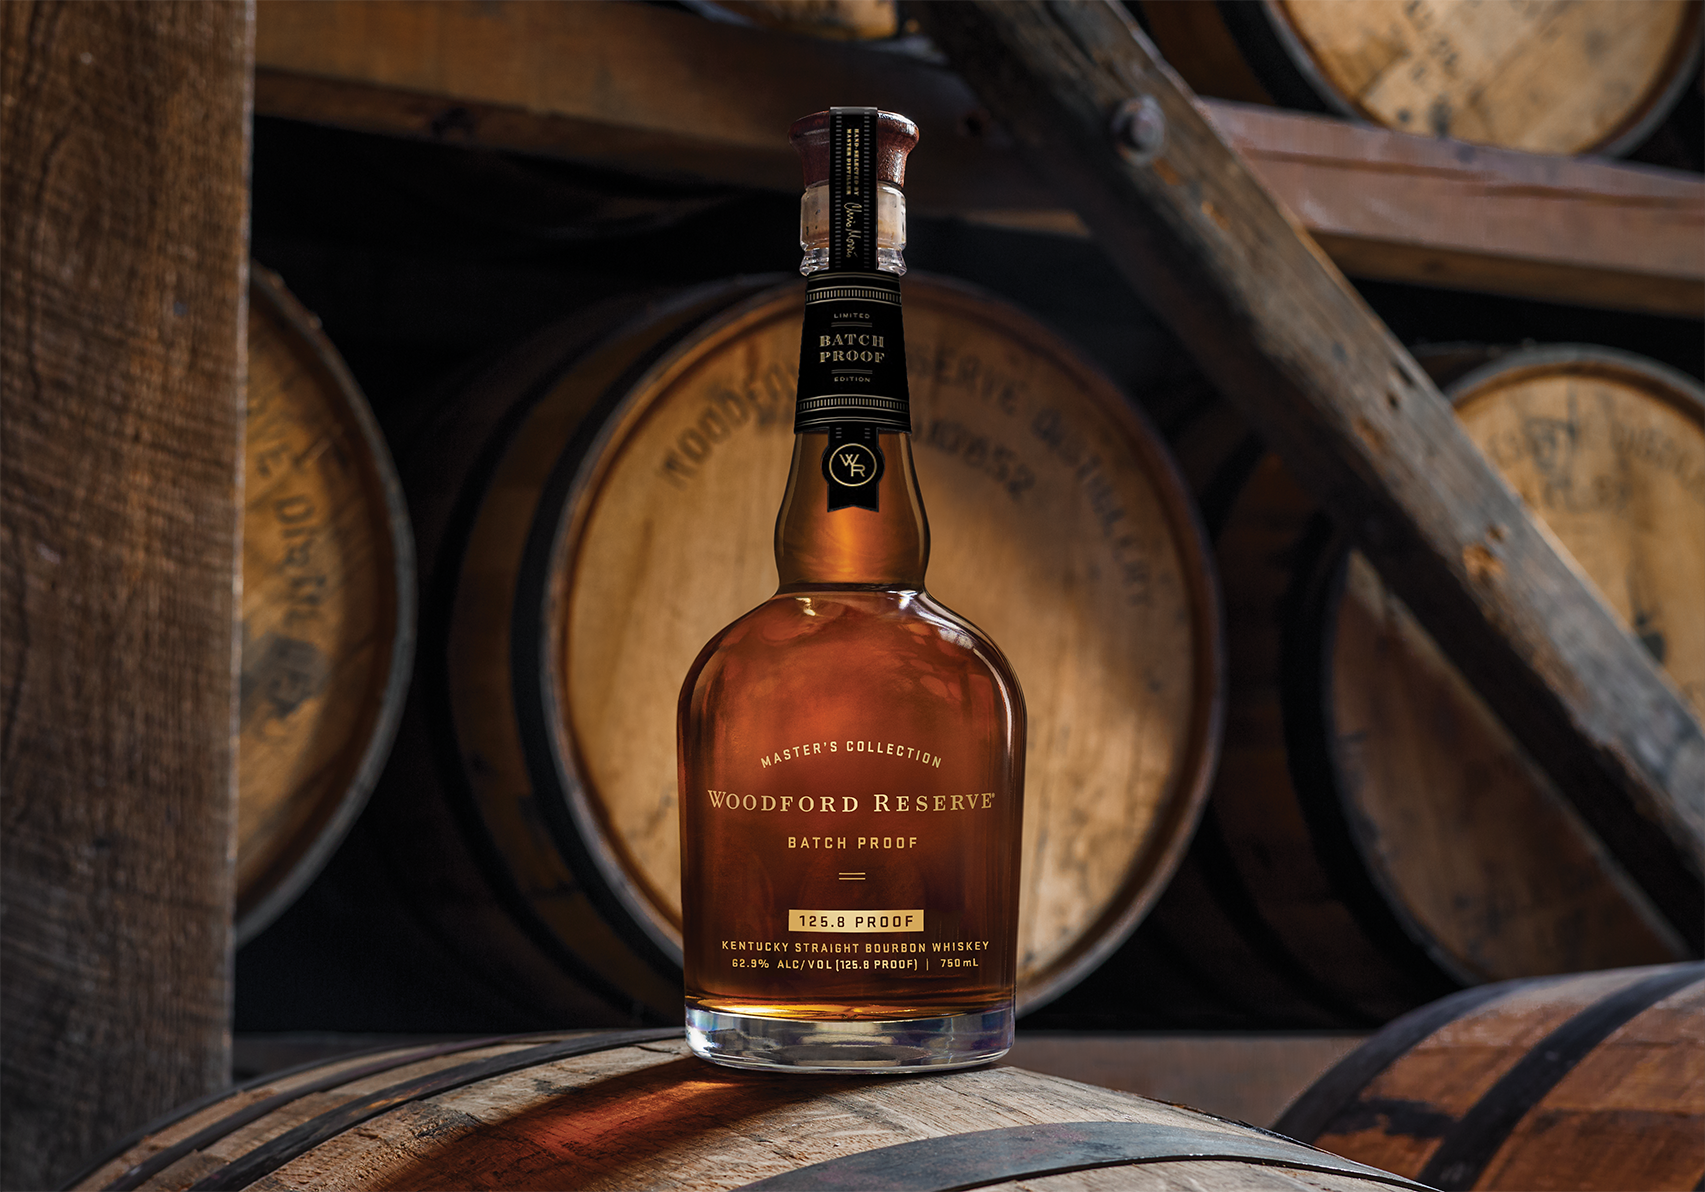 This is a graphic of Nerdy Woodford Reserve Personalized Label Program